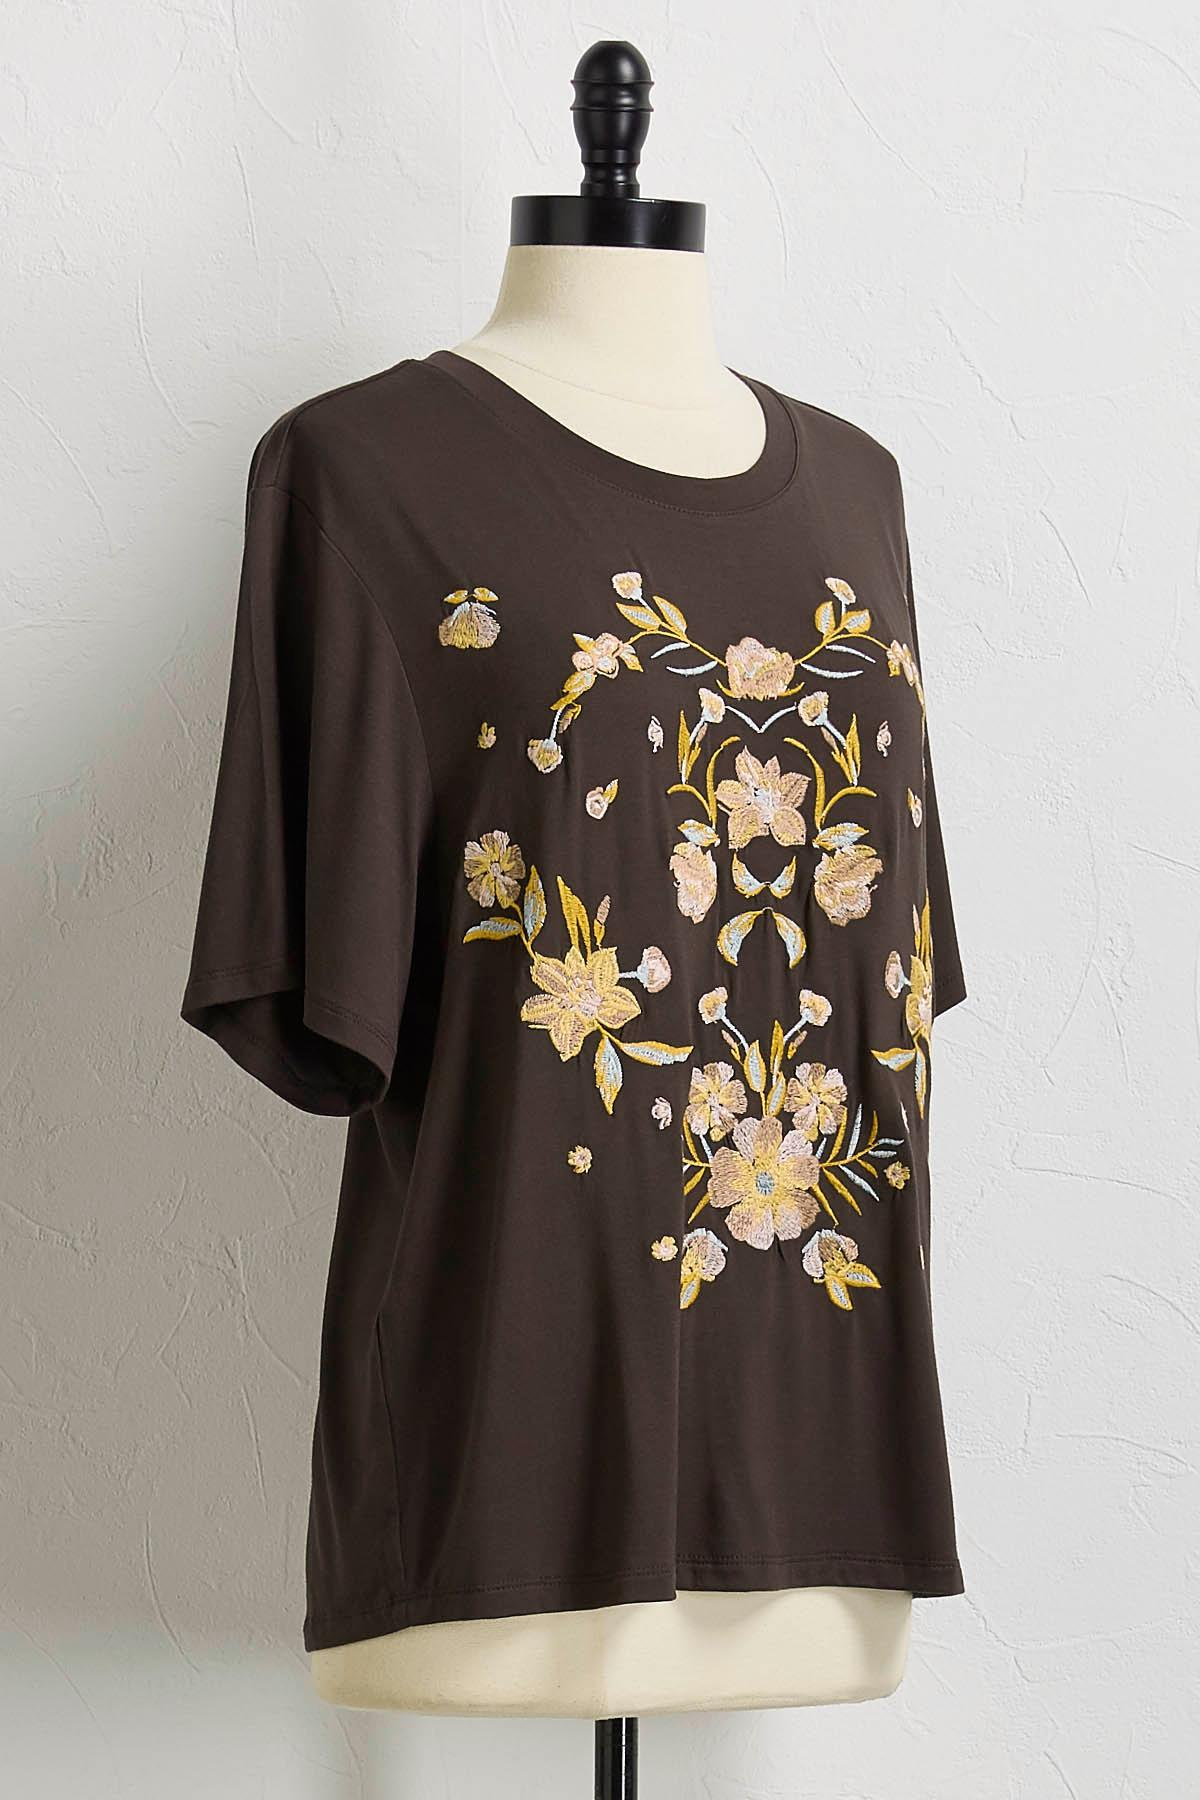 Soft Floral Embroidered Tee